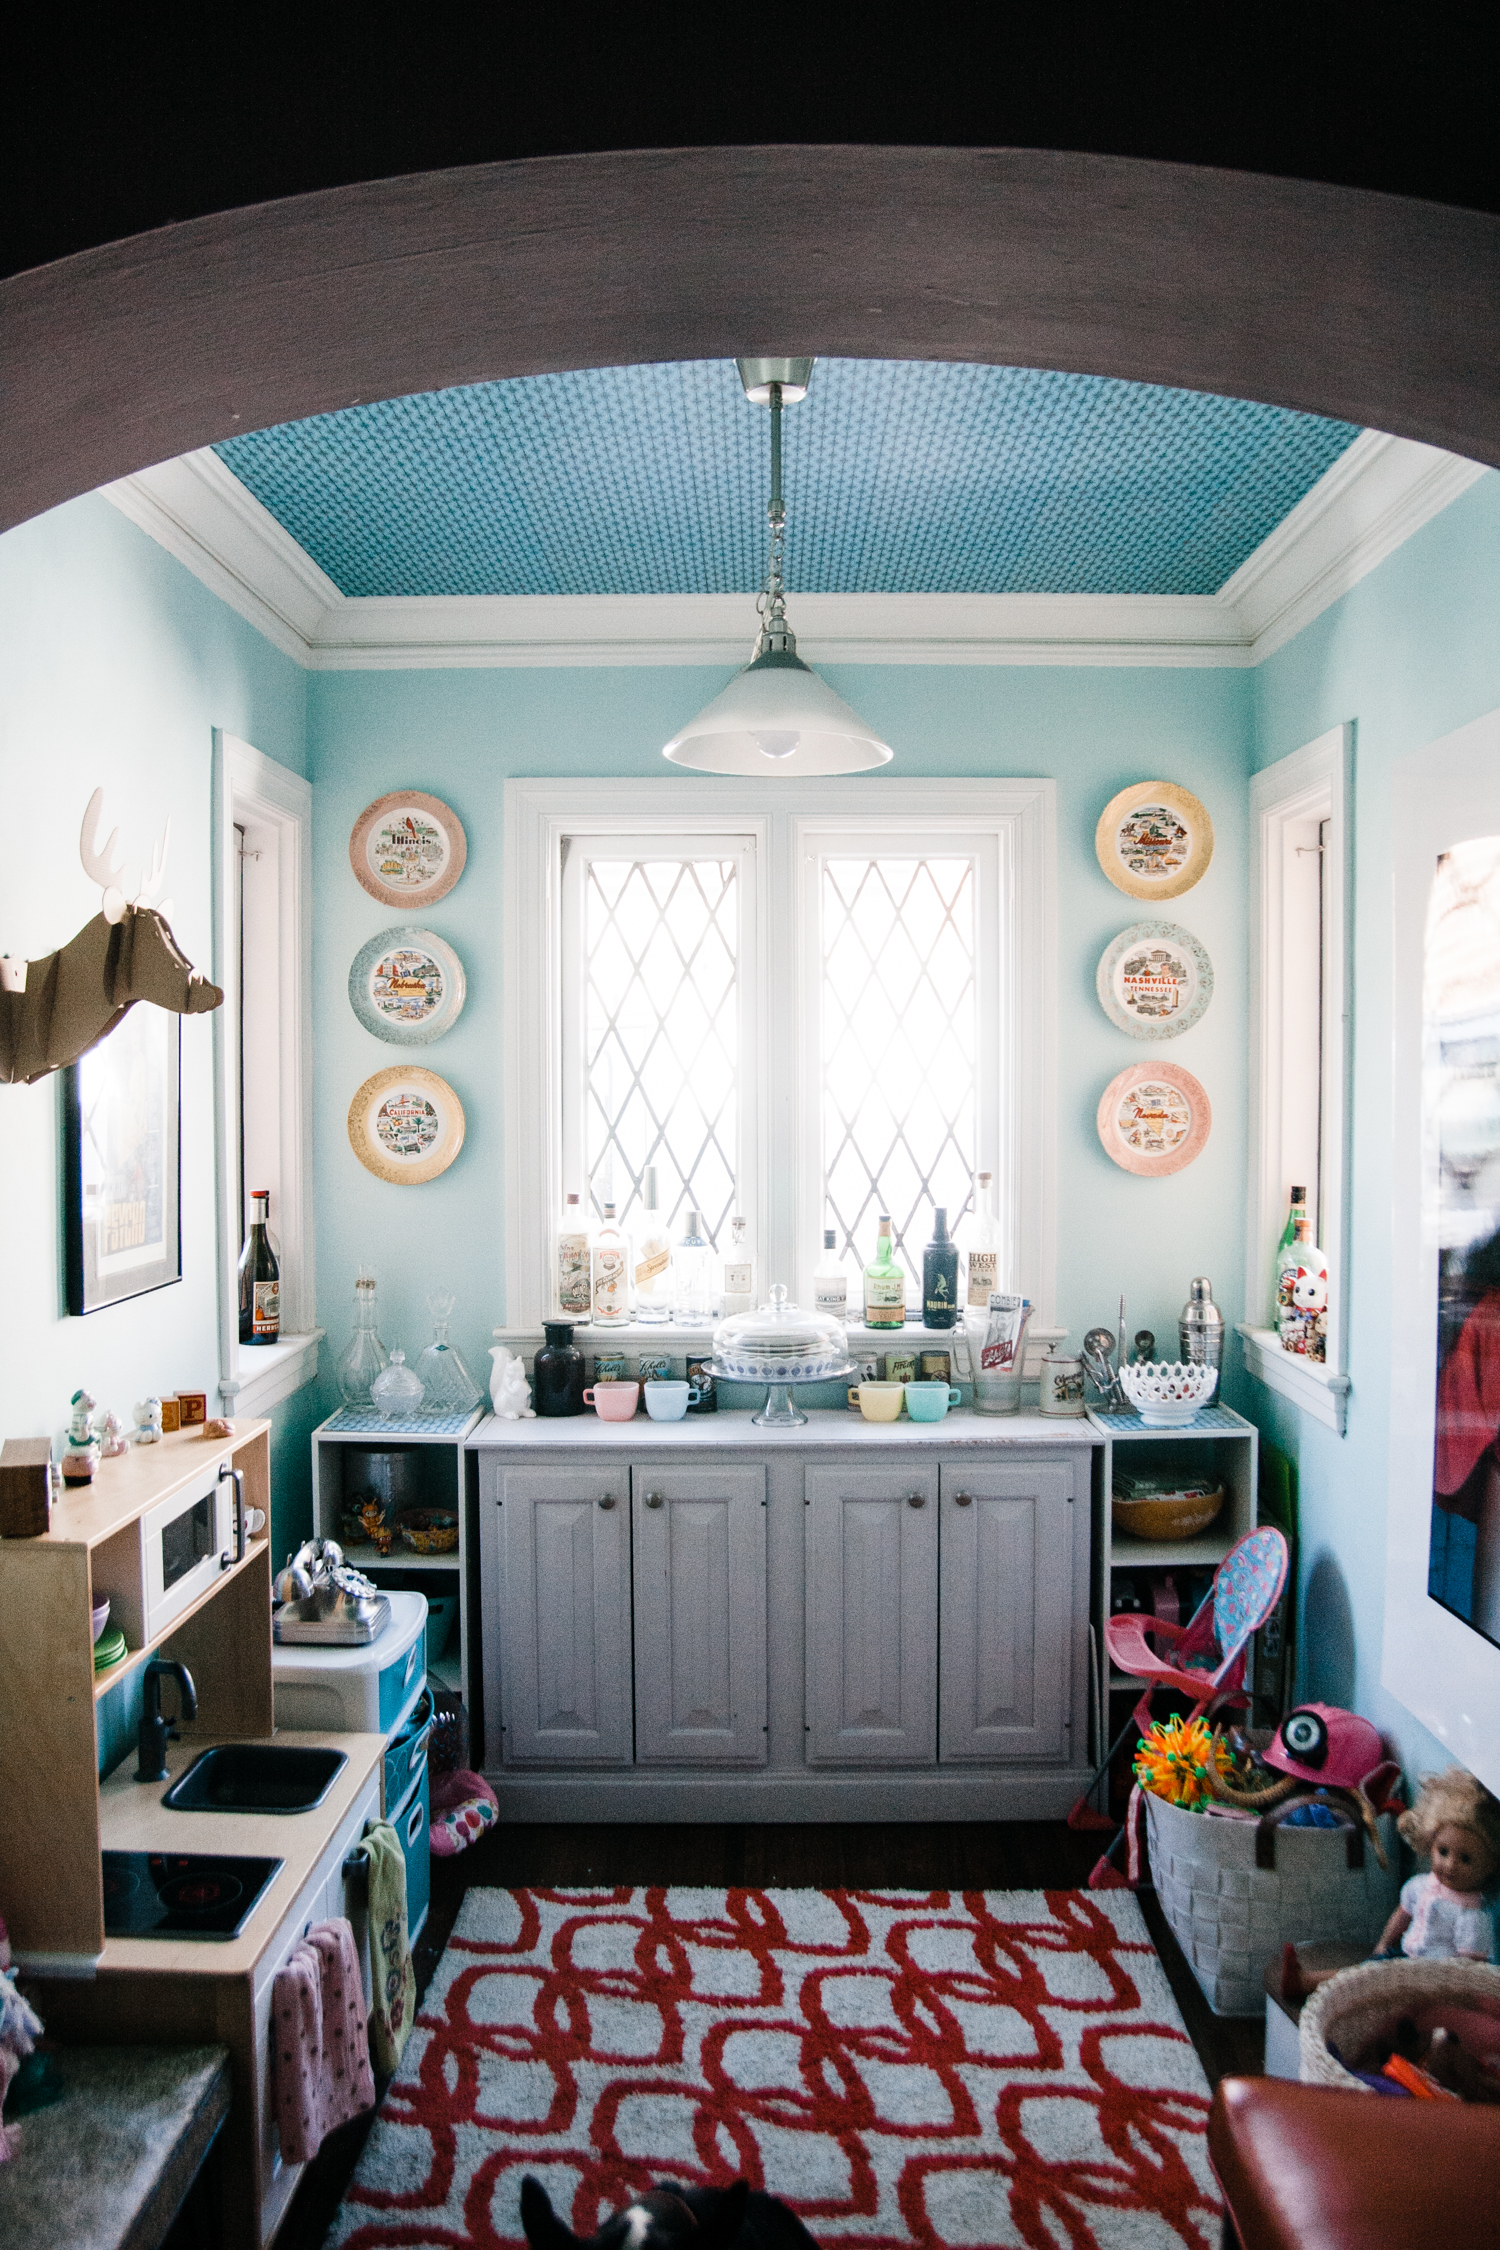 Claudette's sun-filled playroom. Check out the ceiling! Allison meticulously hand cut and pasted this vintage-style scrapbook paper.